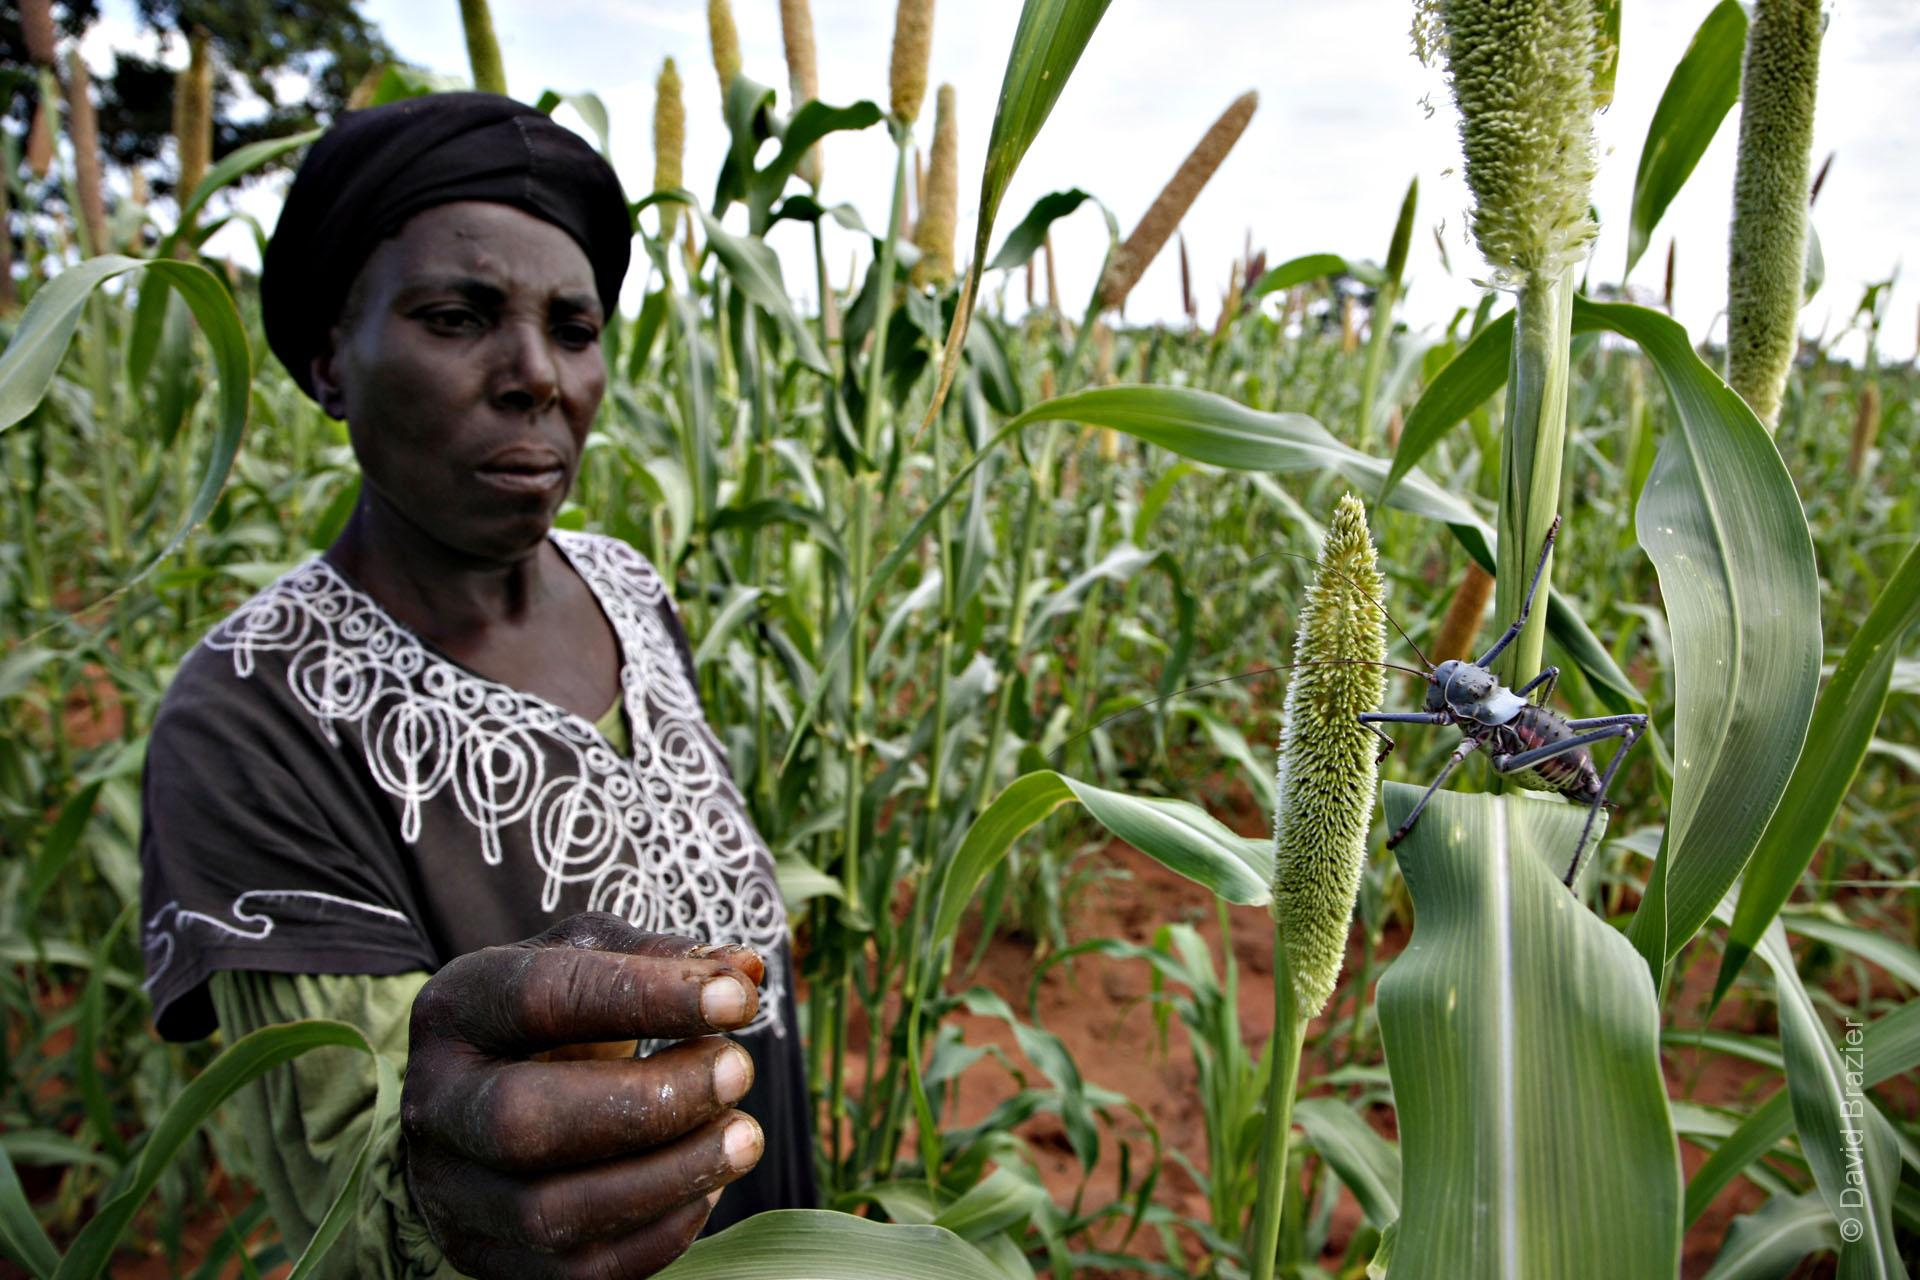 A Zimbabwean women in her pearl millet field catching an armoured cricket